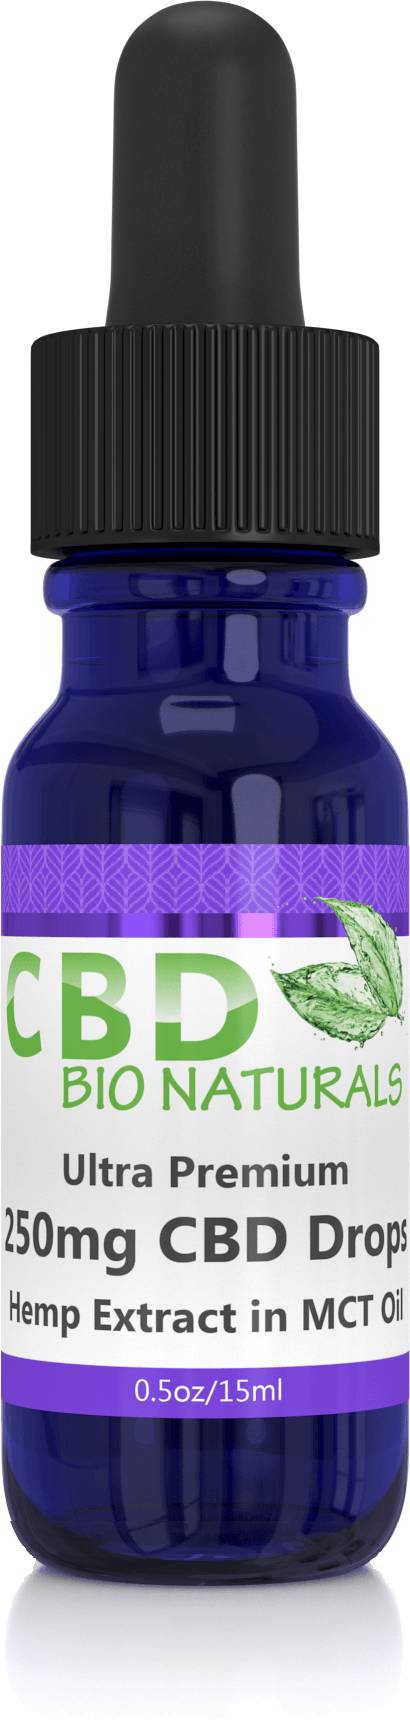 0.5oz 250mg CBD Hemp in MCT Oil